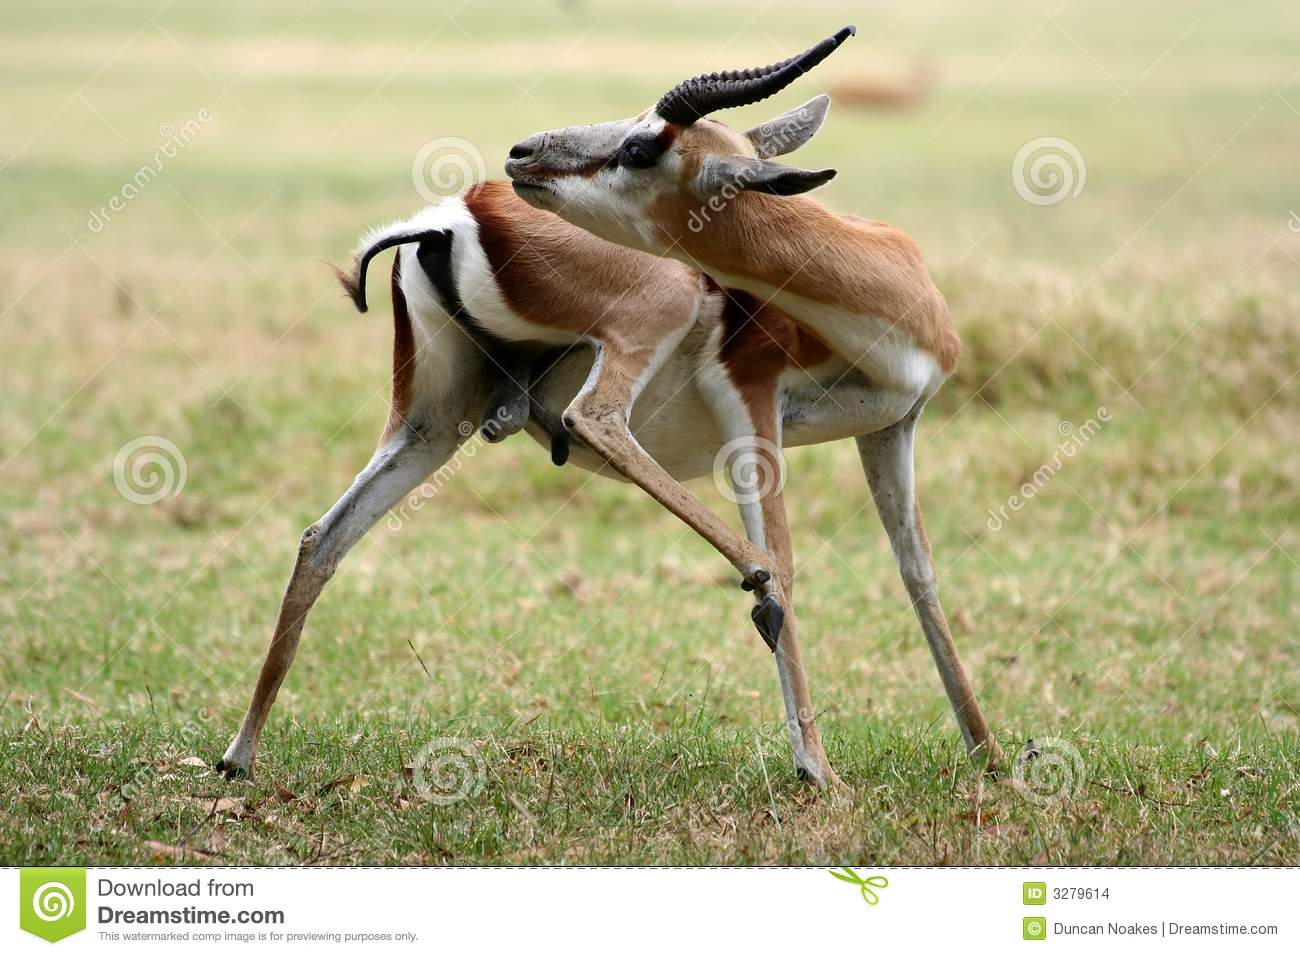 clipart springbok - photo #46